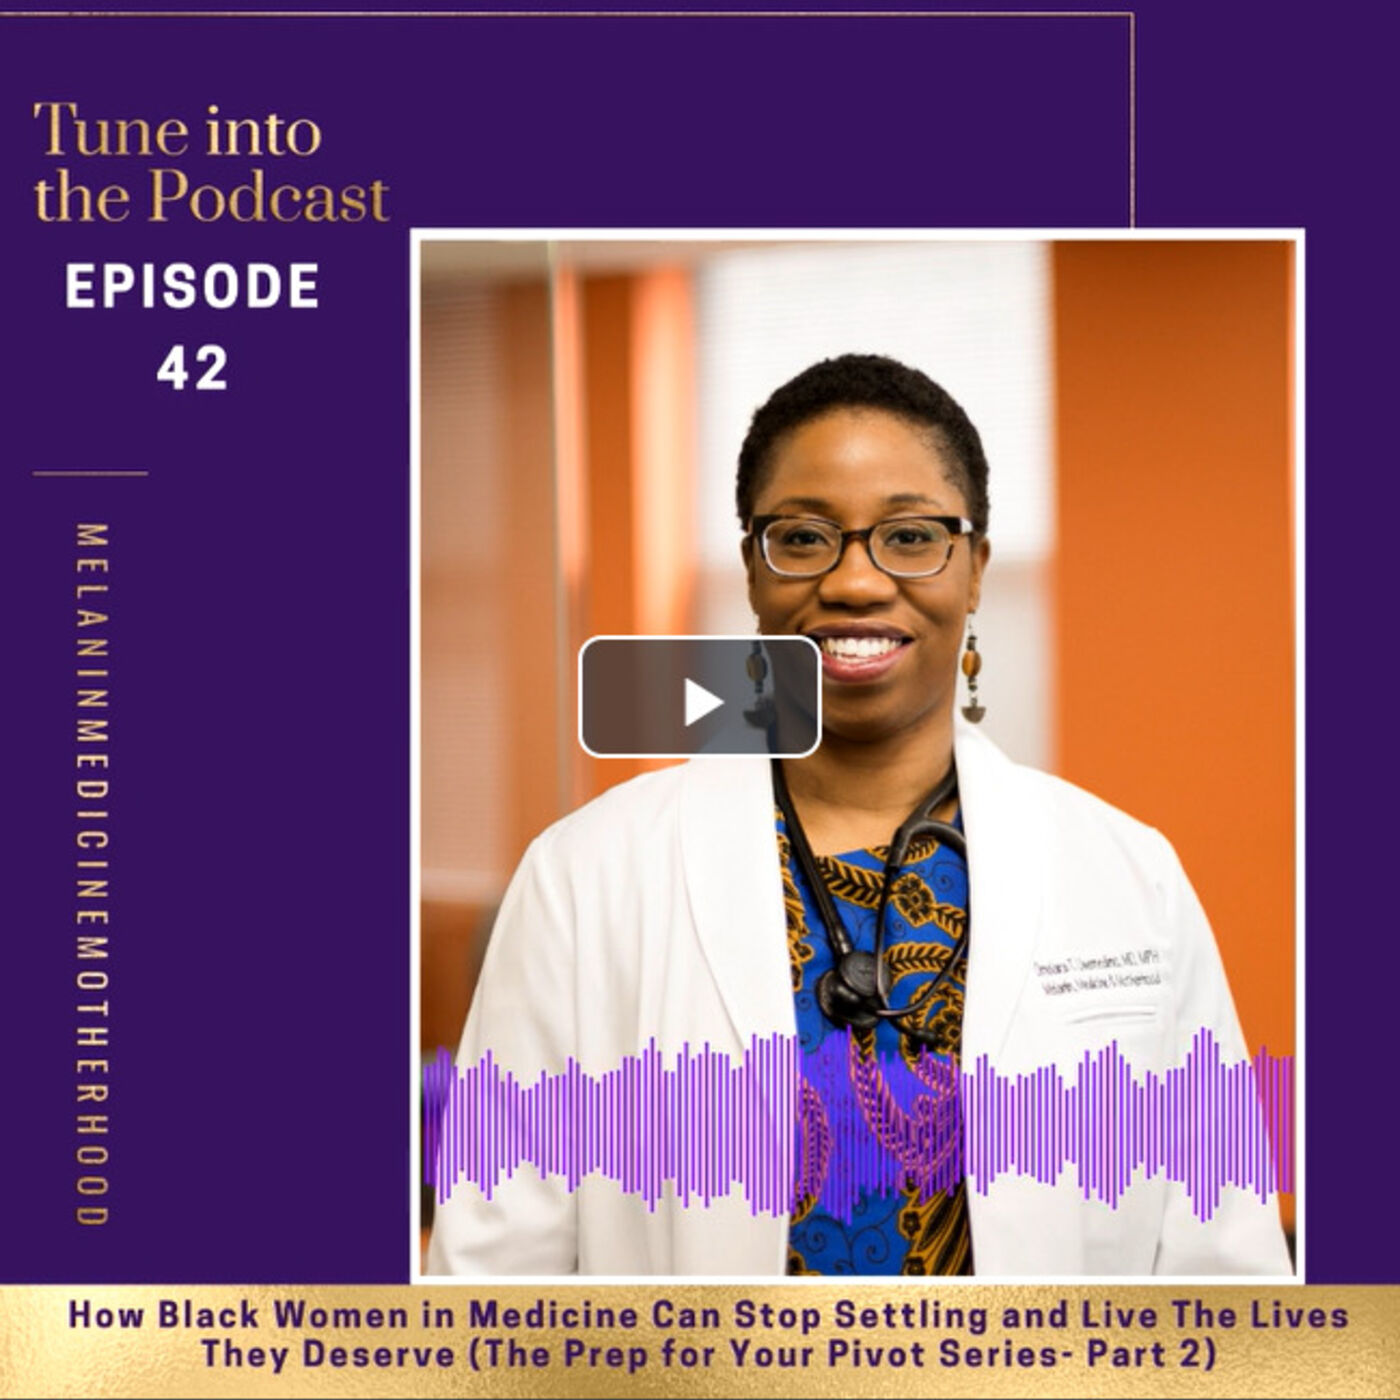 Episode 42: How Black Women in Medicine Can Stop Settling and Live The Lives They Deserve (The Prep for Your Pivot Series- Part 2)